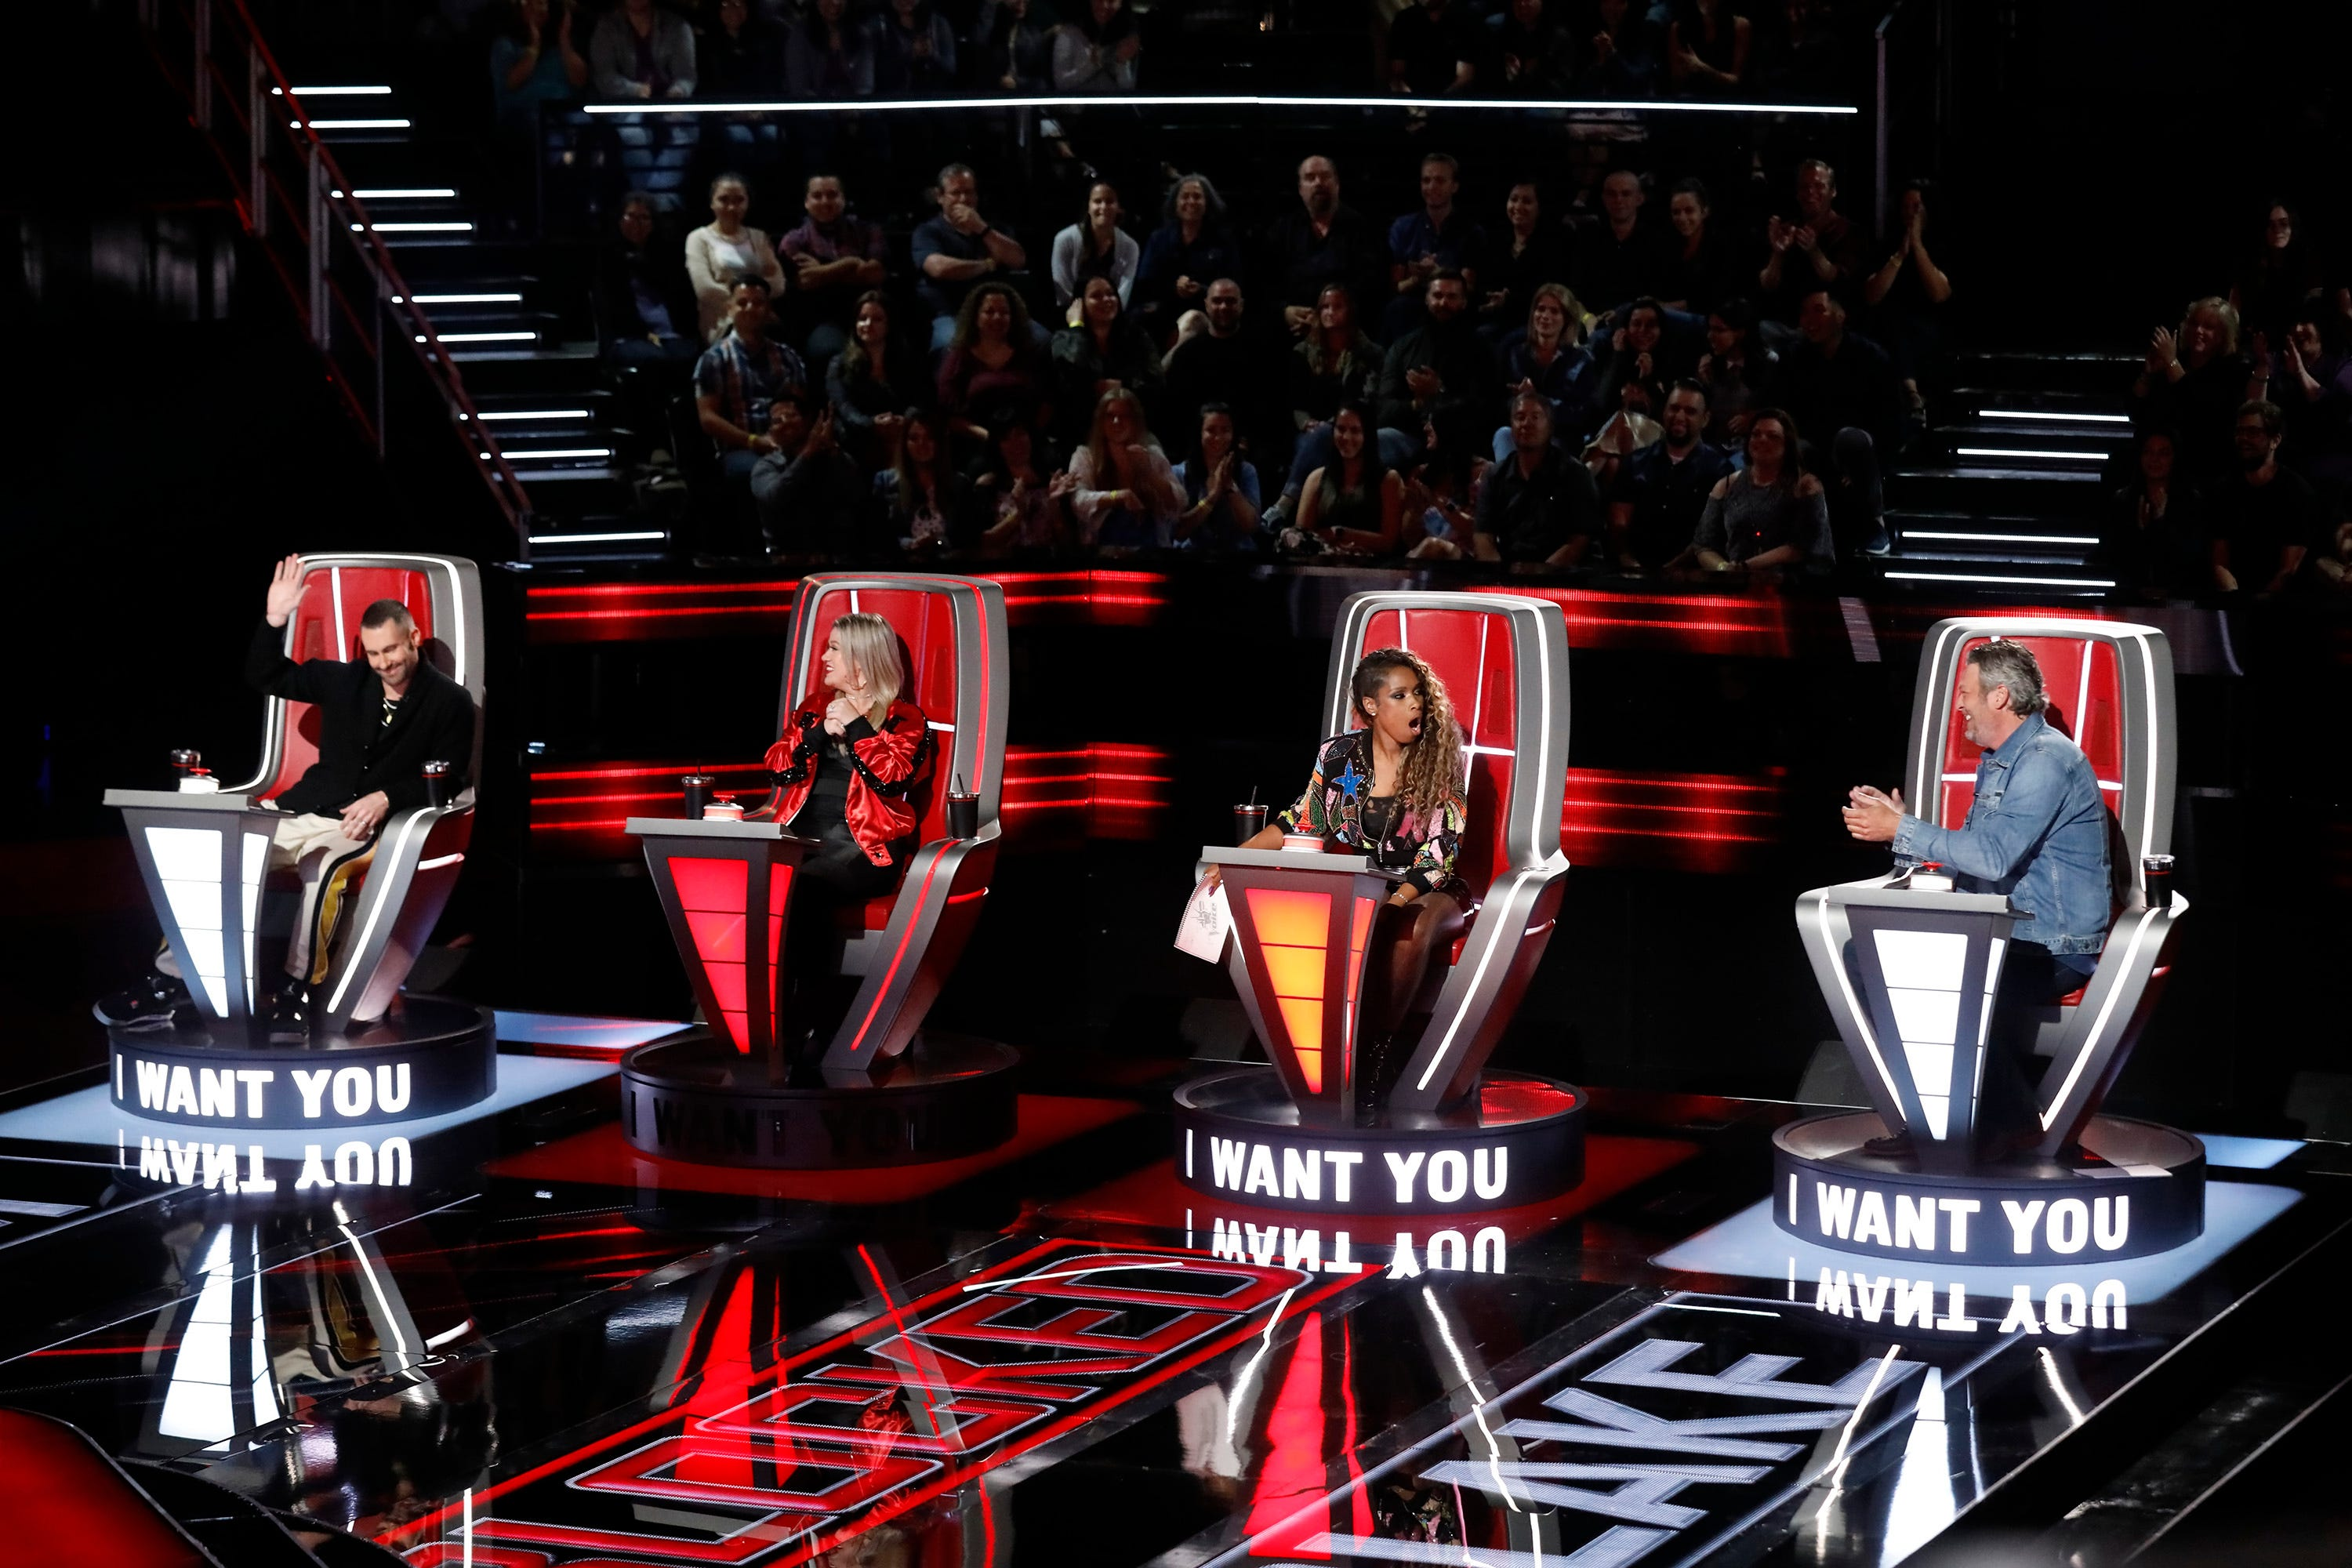 Jennifer Hudson blocks Kelly Clarkson to snag Zaxai on 'The Voice'